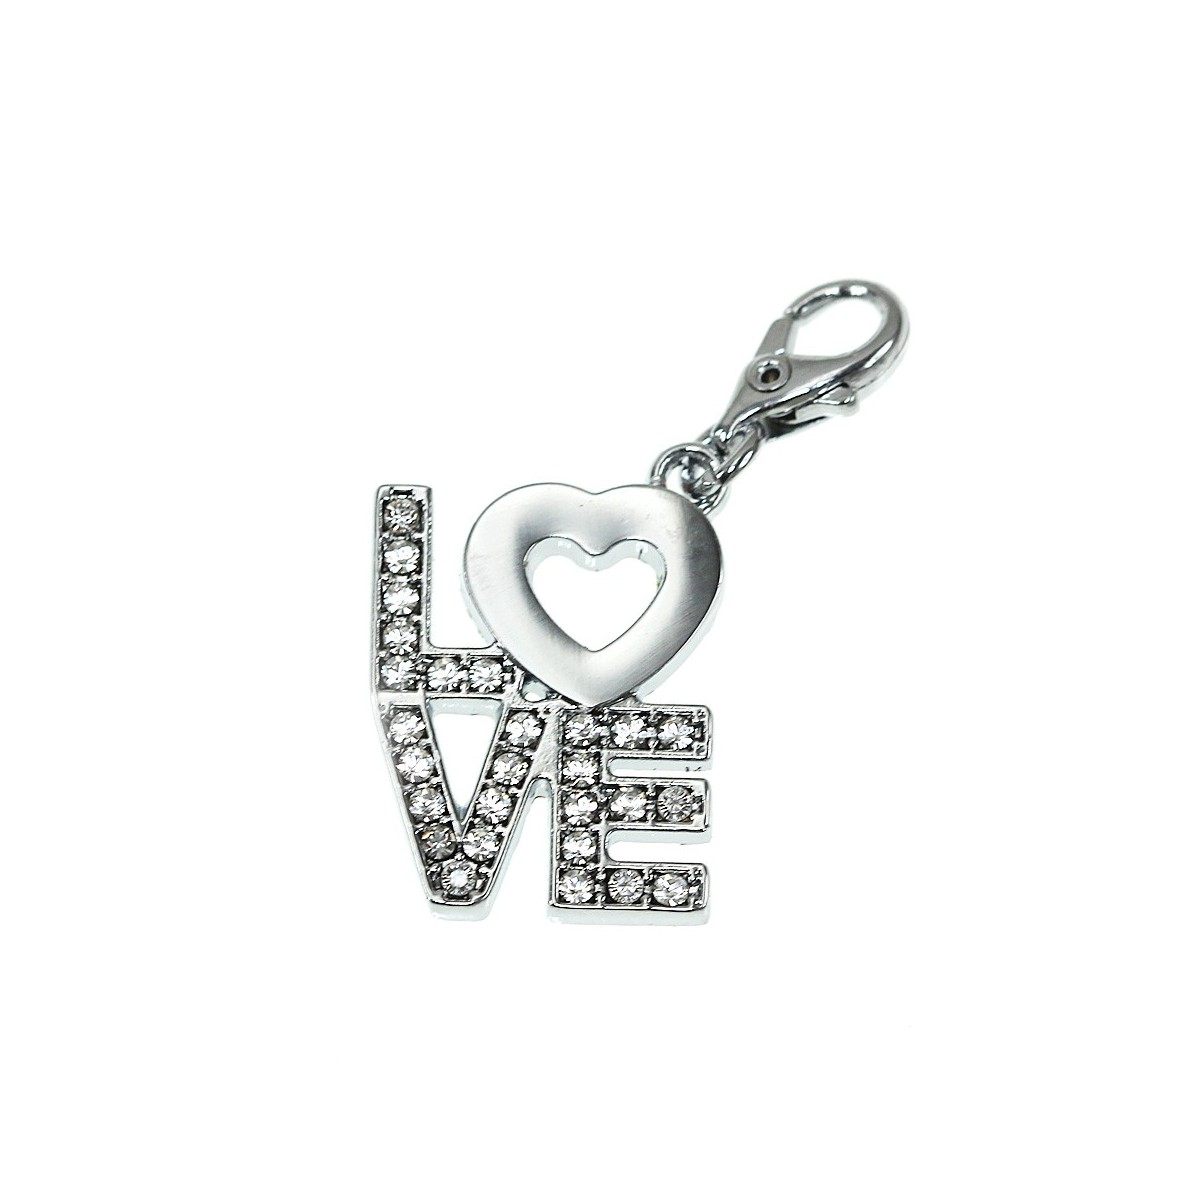 Charm LOVE So Charm made with Crystal from Swarovski